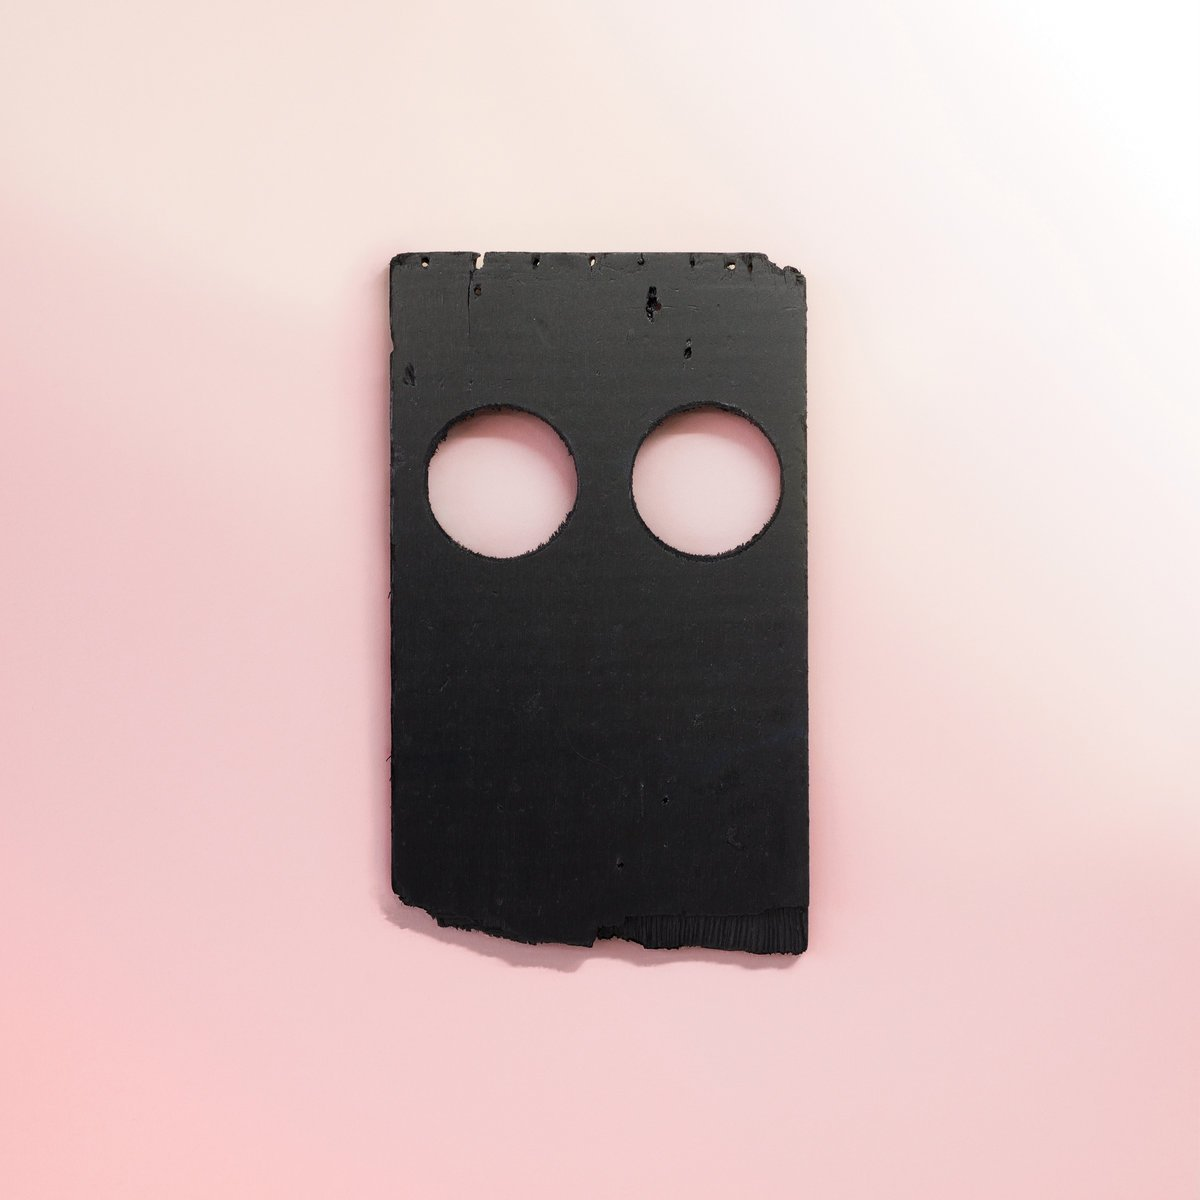 Low (@lowtheband) returned in 2018 with one of their most ambitious albums yet, 'Double Negative,' on @subpop. It comes in at #52 on our listener voted #KEXPTop903 countdown. Read our interview with Alan Sparhawk on the making of the record: https://t.co/n7feZmNBWs